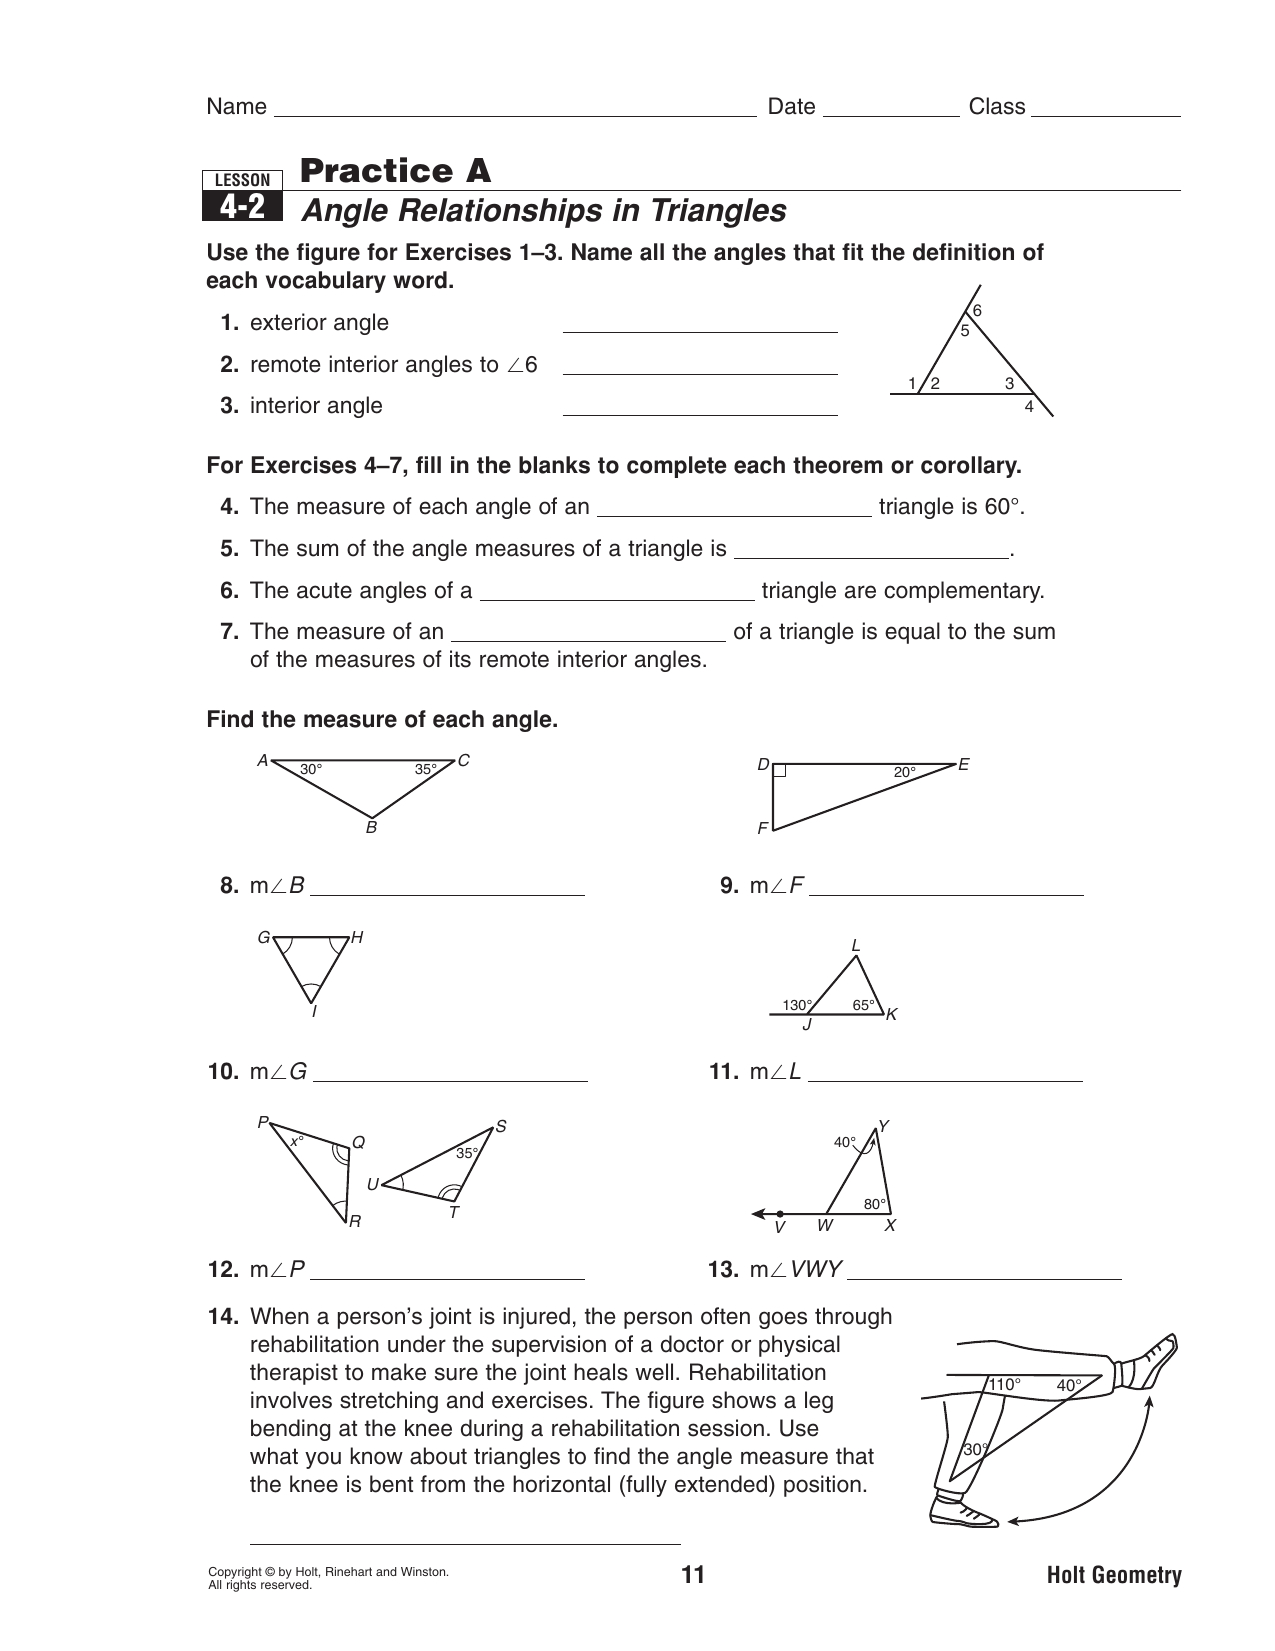 42 Practice A Angle Relationships In Triangles | db-excel.com